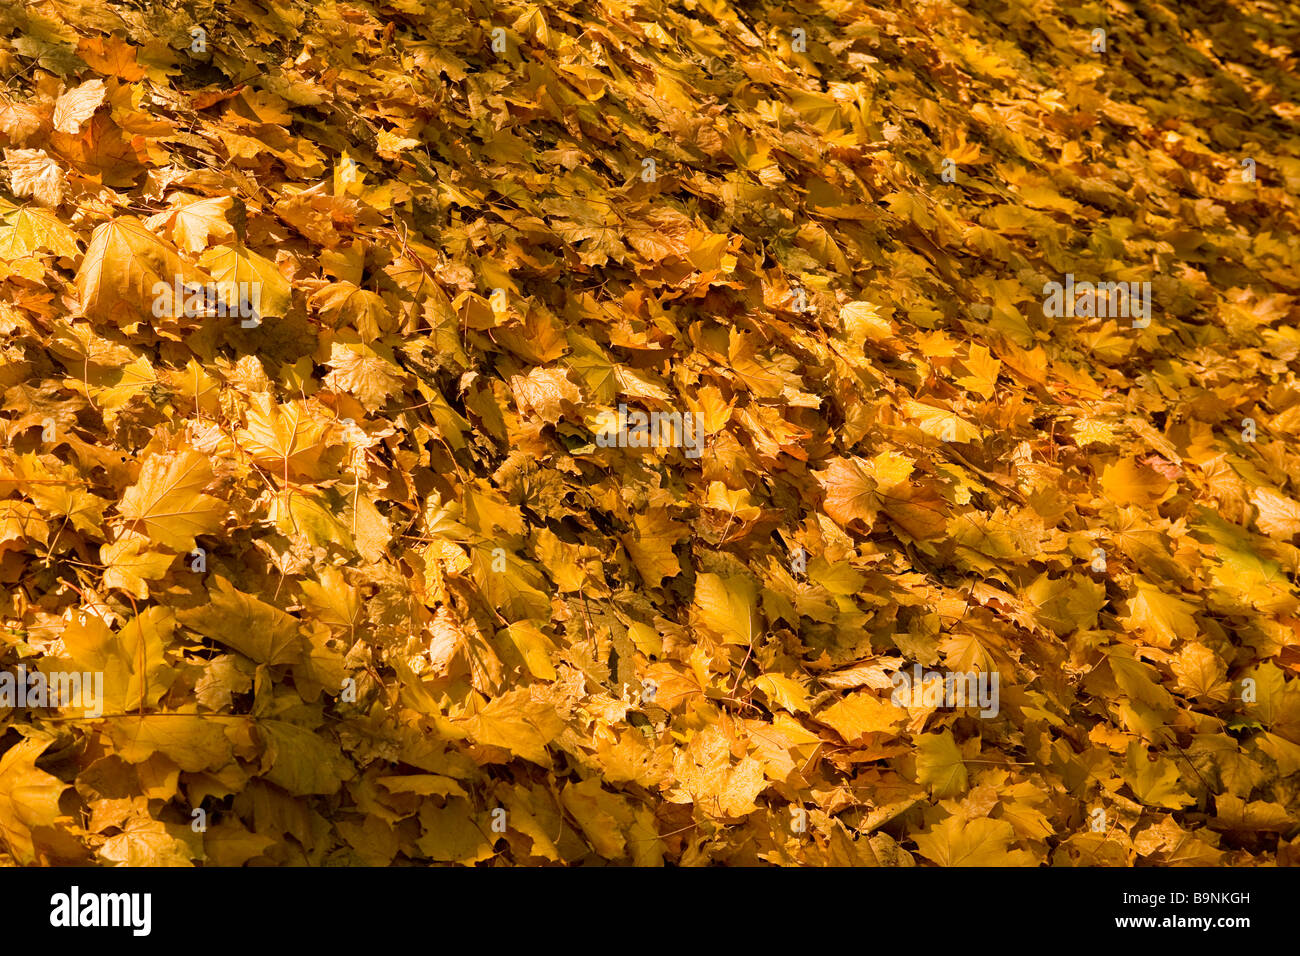 abstract image of path covered in autumn golden brown leaves - Stock Image